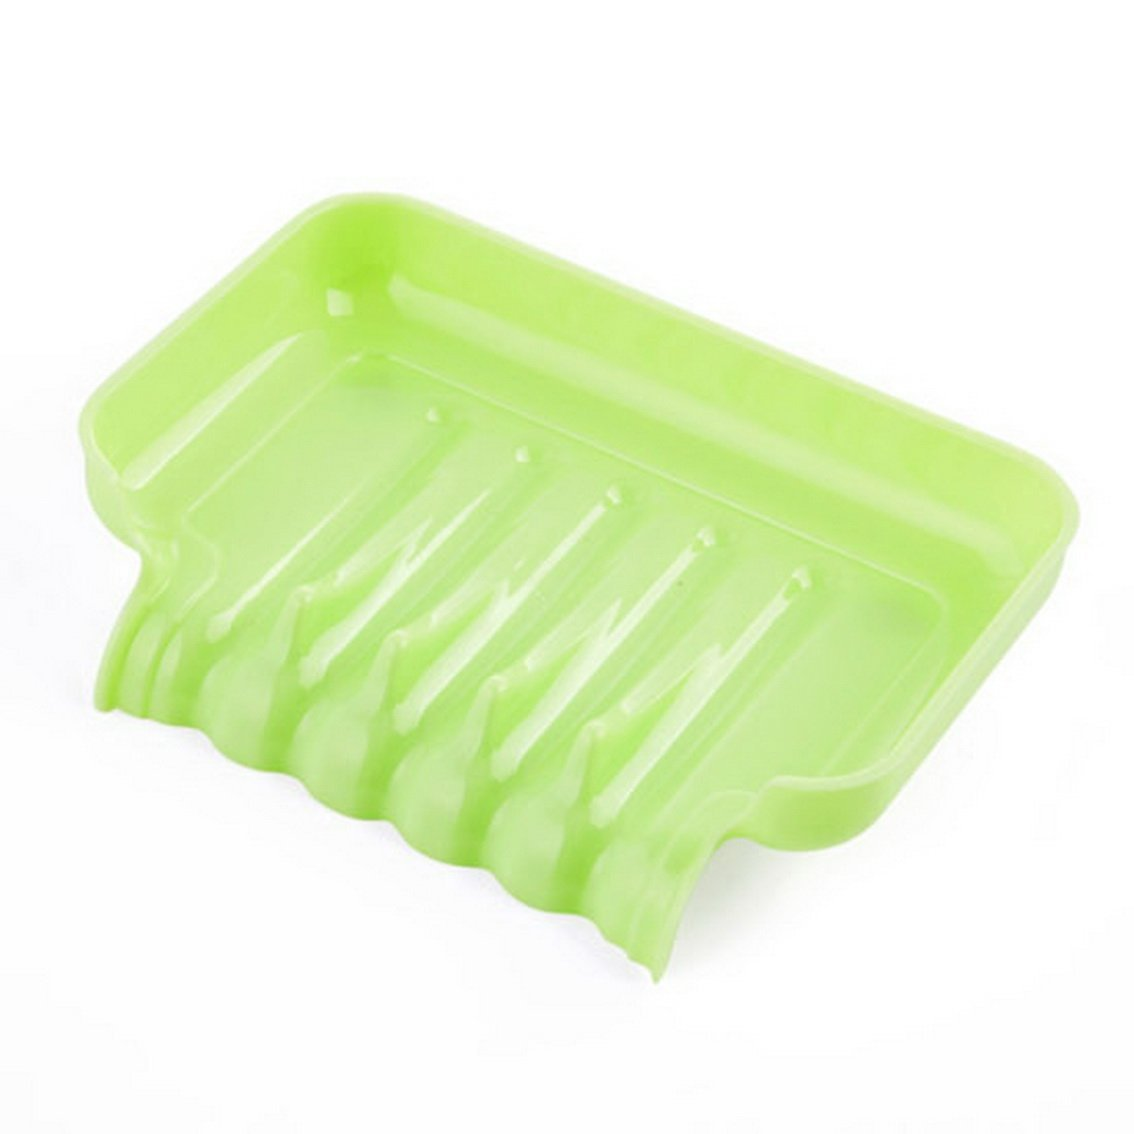 fengg2030shann Suction cups soap box bath soap holder Drain kitchen sponge wall suction soap box storage box. Sucker Soap box soap box Soap box soap box Box bath soap holder